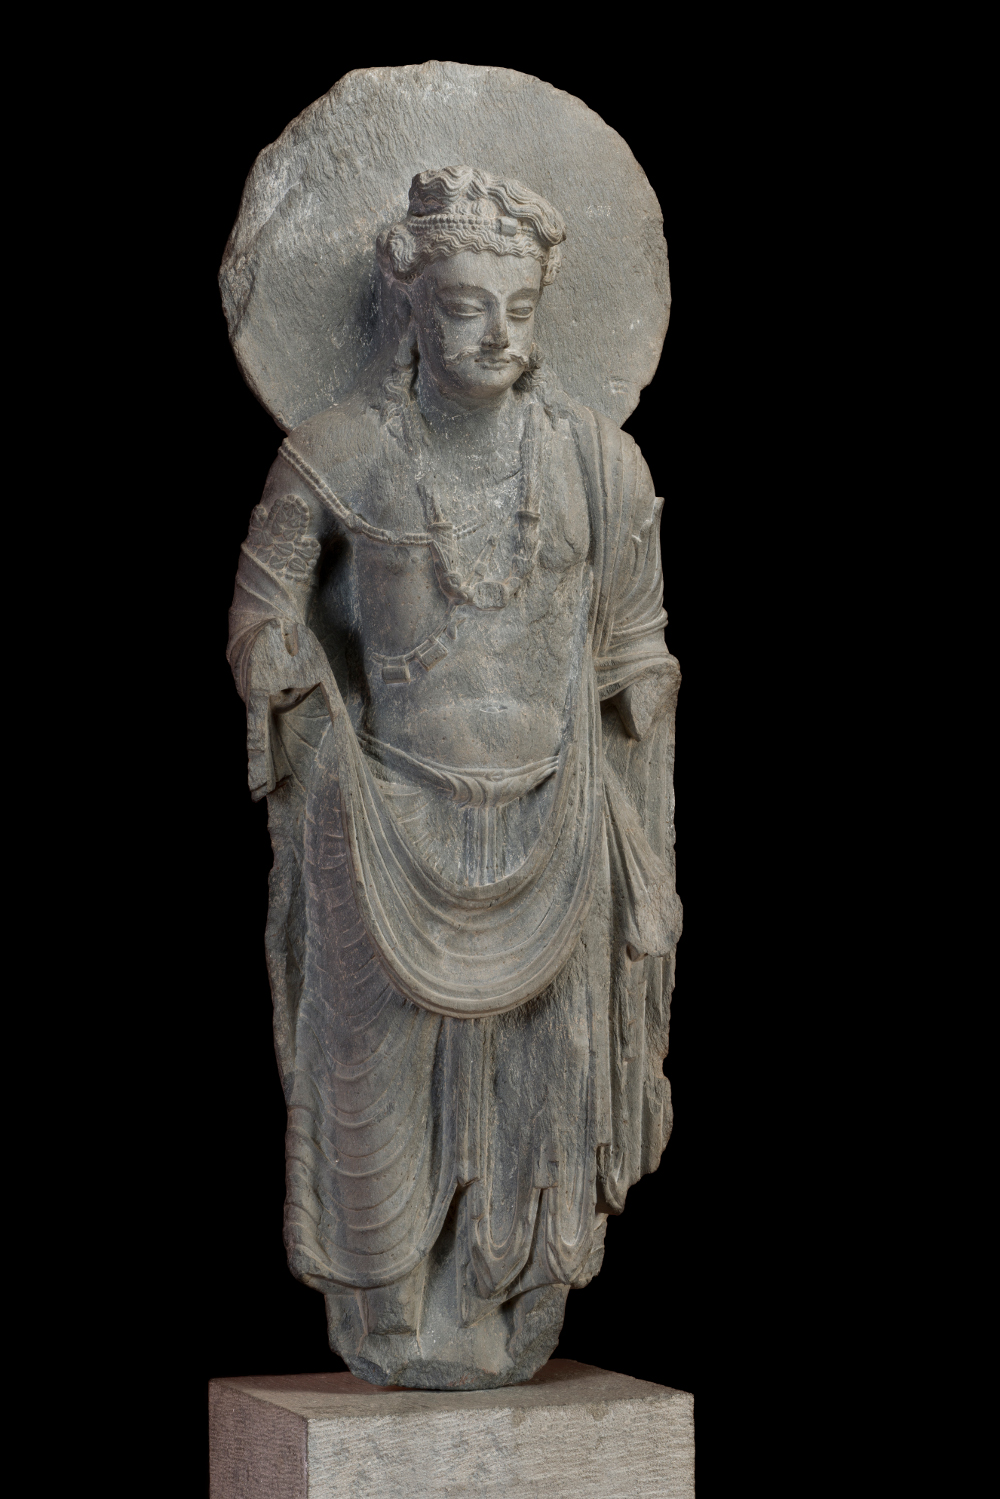 Bodhisattva Maitreya  - Grey schistAD 120–200Gandhara, Pakistan or AfghanistanGovernment Museum and Art Gallery, Chandigarh, India This sculpture of the Bodhisattva Maitreya – the Buddha to be who will succeed Gautama – is an amalgamation of many cultures. The robes are drawn from Greek art traditions, the shape of the moustache and eyes hint at Central Asian ideals of beauty, while the Buddhist iconography originates in India. Strength is communicated by his musculature, strong jaw and noble expression; spirituality through the meditative eyes and by the kamandalu, the water pot carried by wandering ascetics in India.